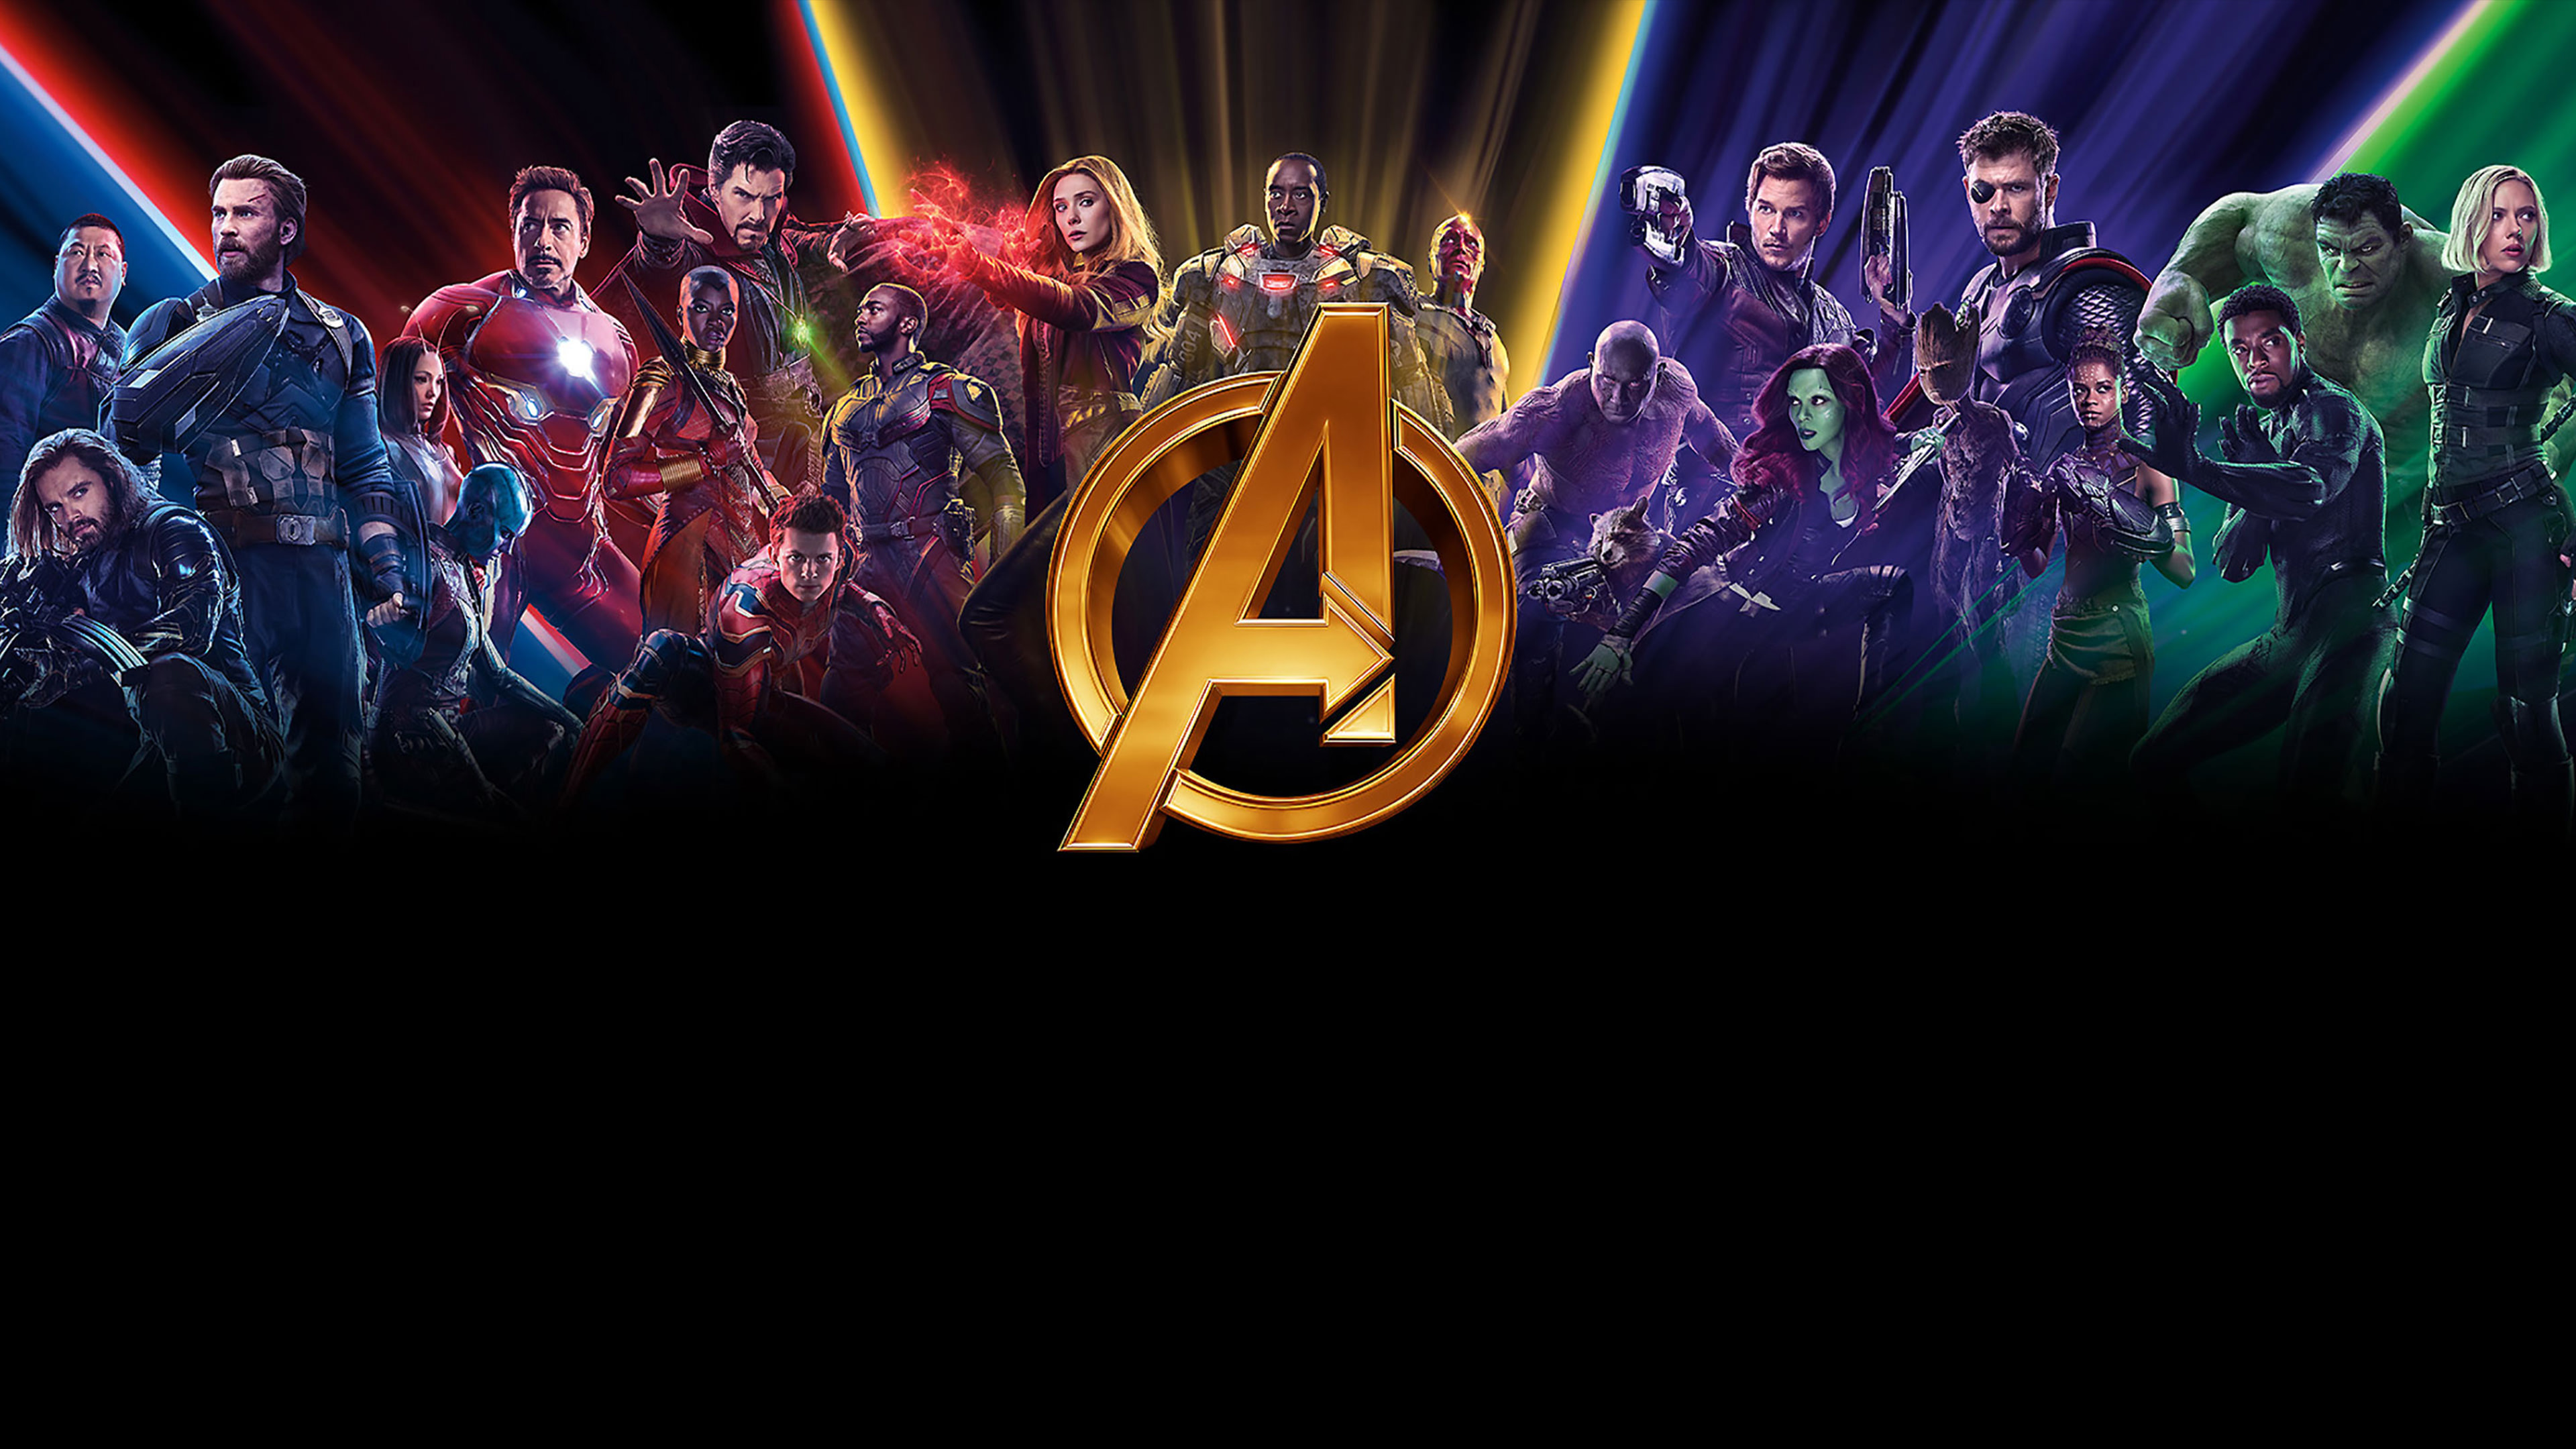 Avengers Infinity War 4k, HD Movies, 4k Wallpapers, Images ...